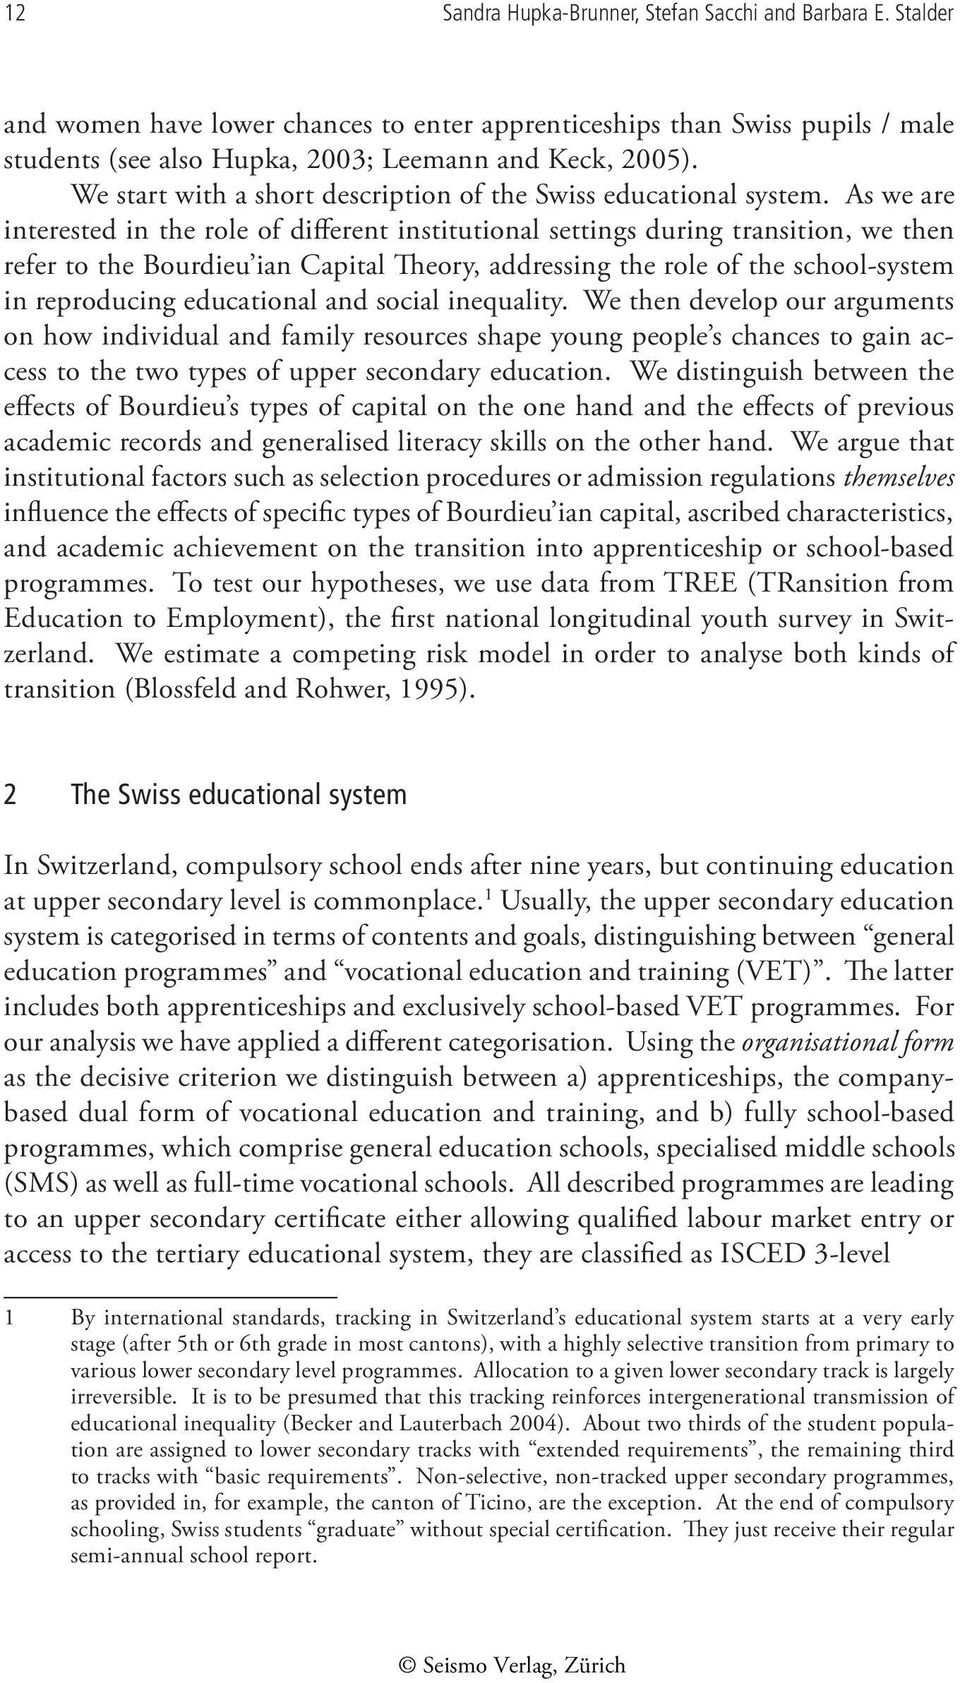 As we are interested in the role of different institutional settings during transition, we then refer to the Bourdieu ian Capital Theory, addressing the role of the school-system in reproducing